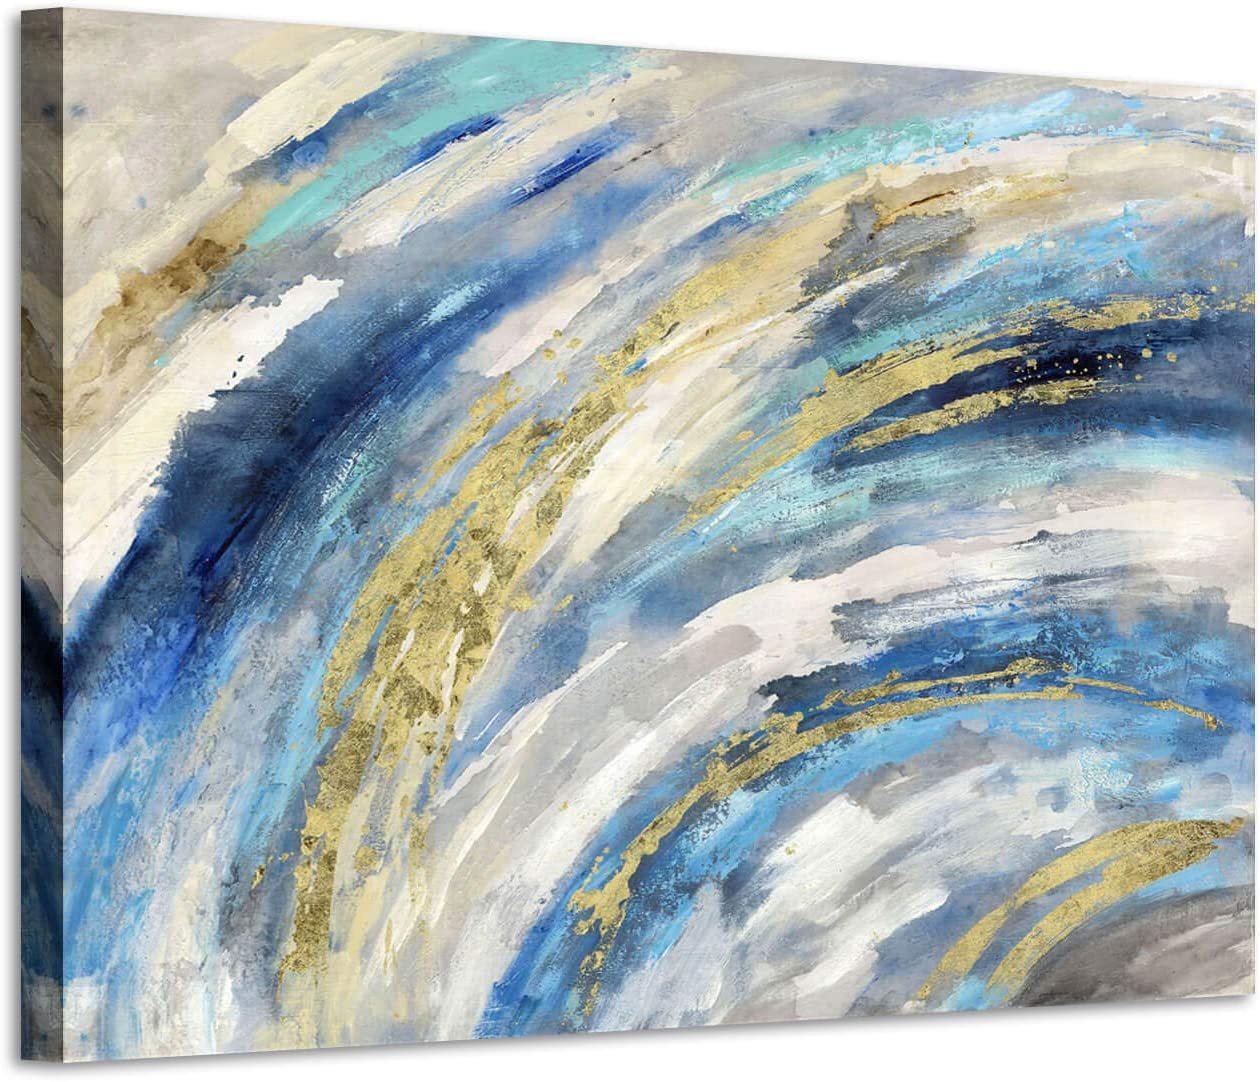 Modern Abstract Wall Art Canvas: Gold and Blue Painting Artwork Hand Painted Picture for Bedroom (36'' x 24''x 1 panel)